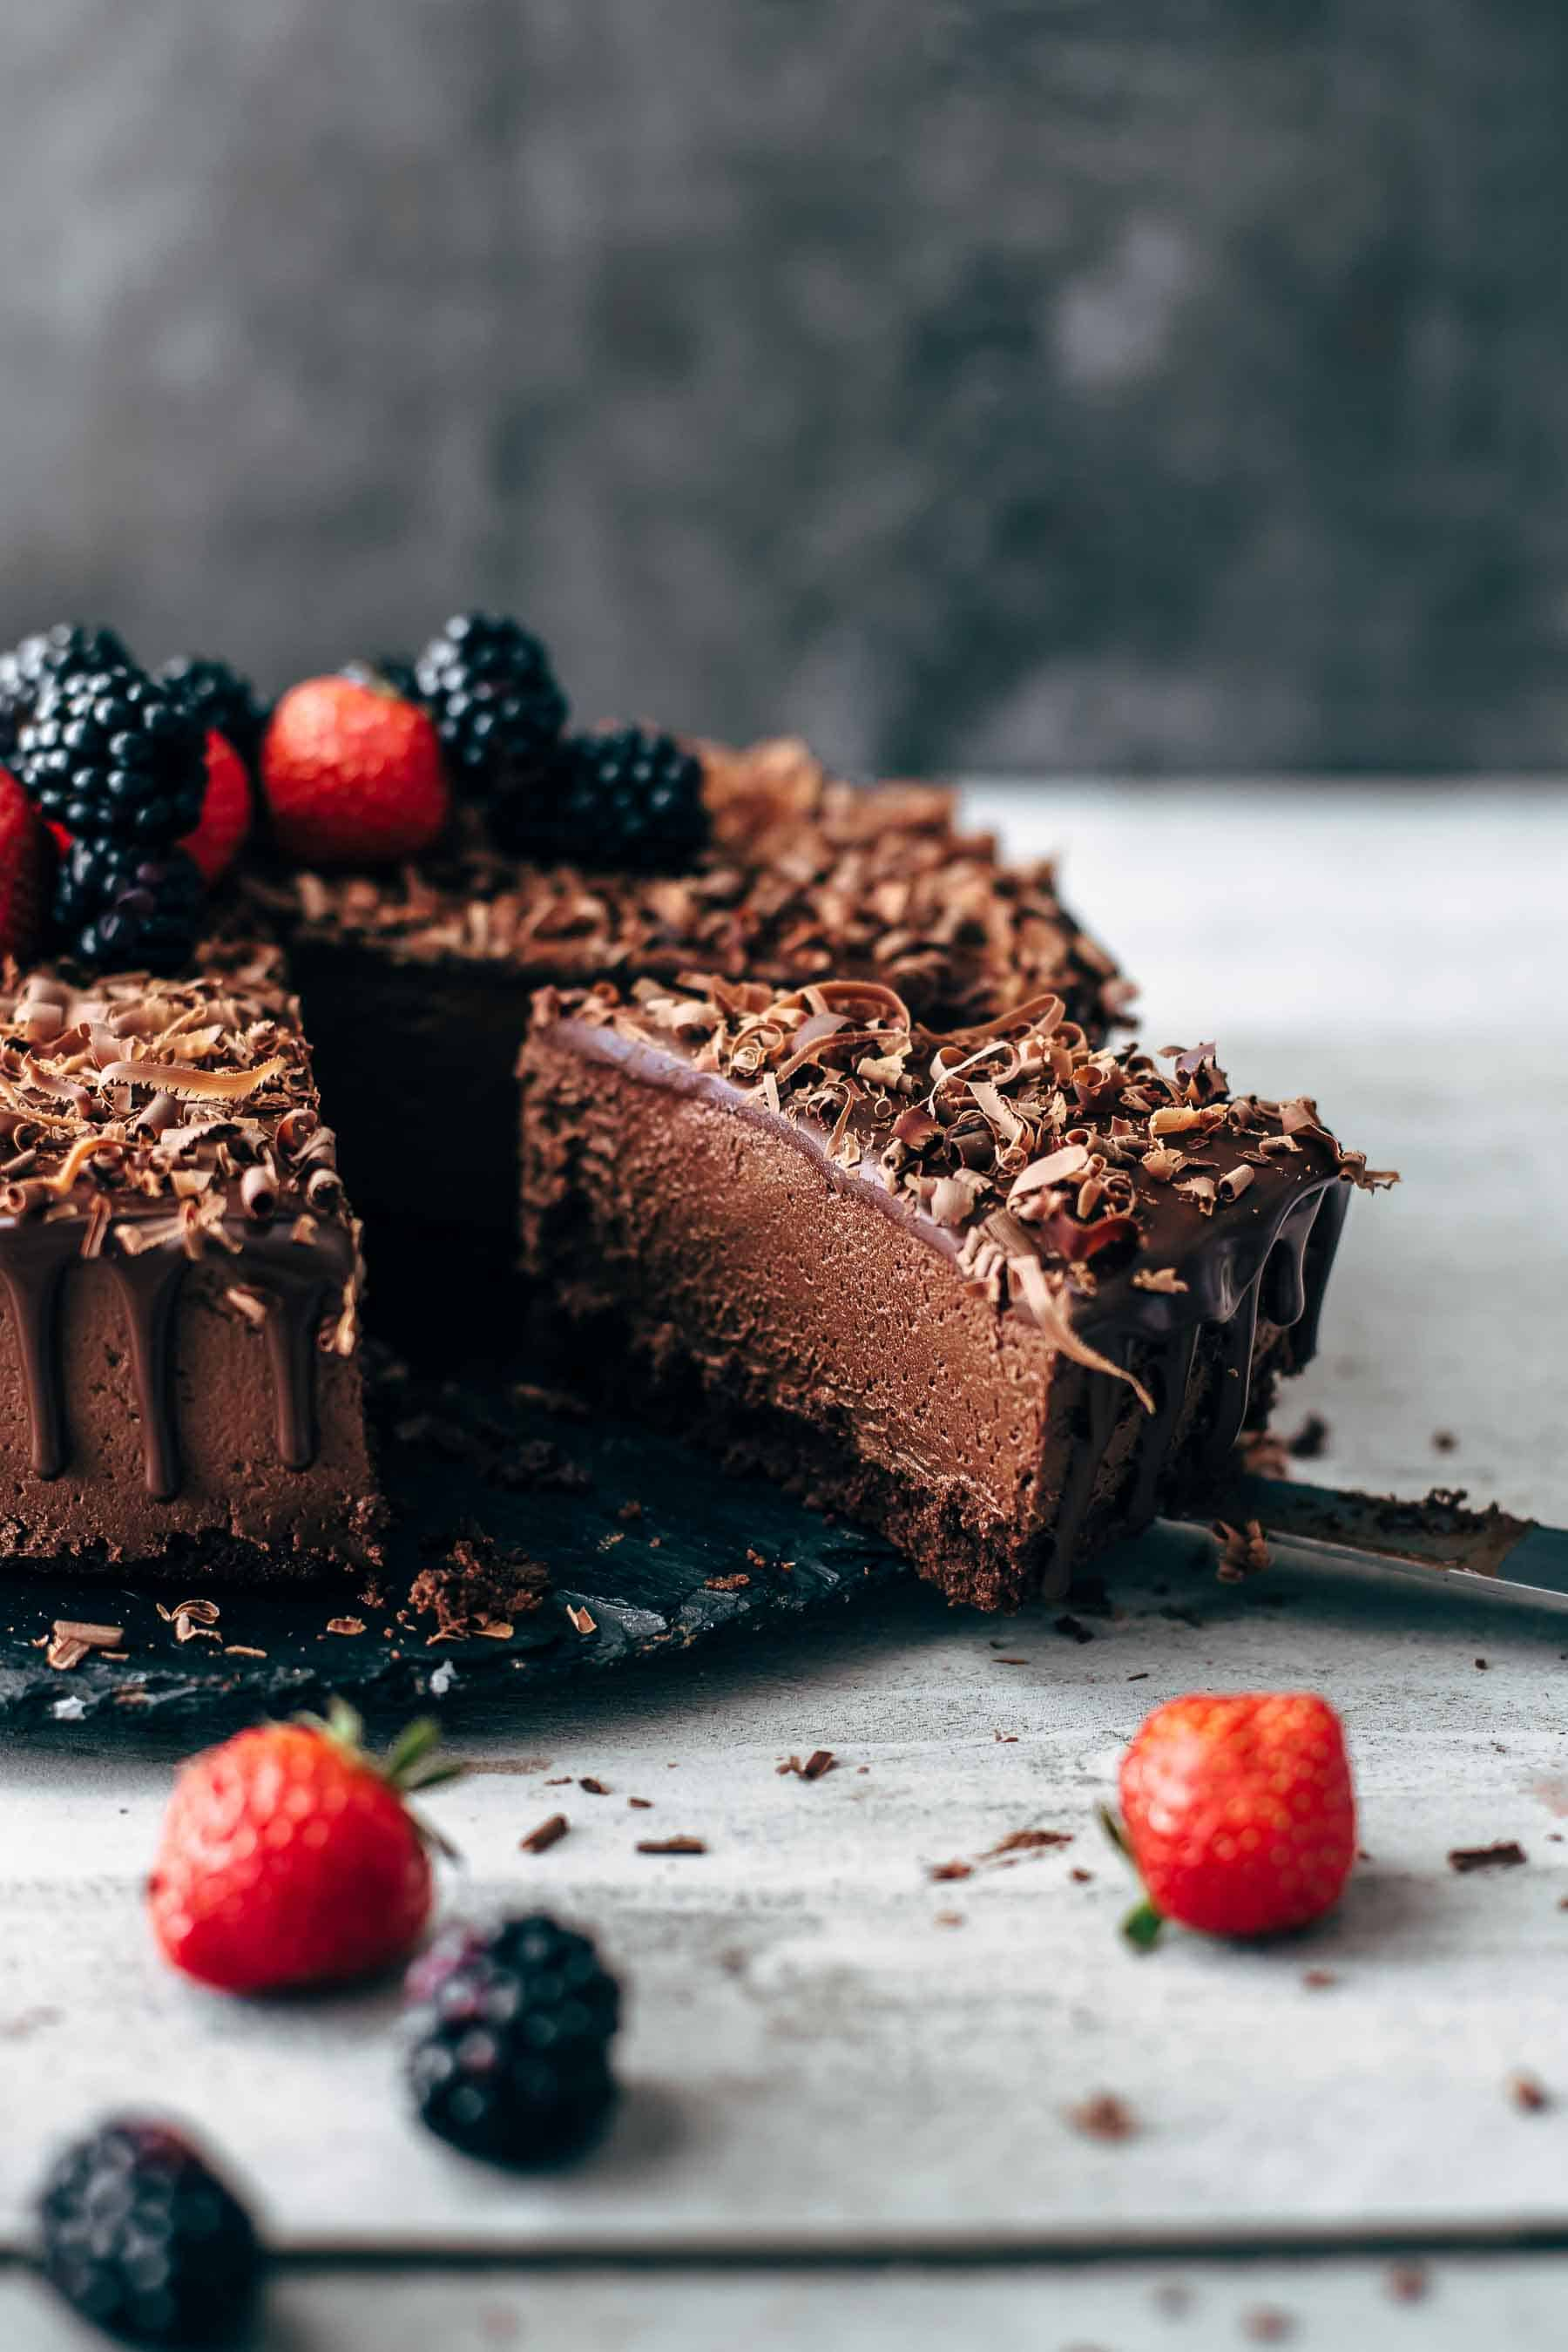 Cut chocolate mousse cake slice decorated with berries on grey background